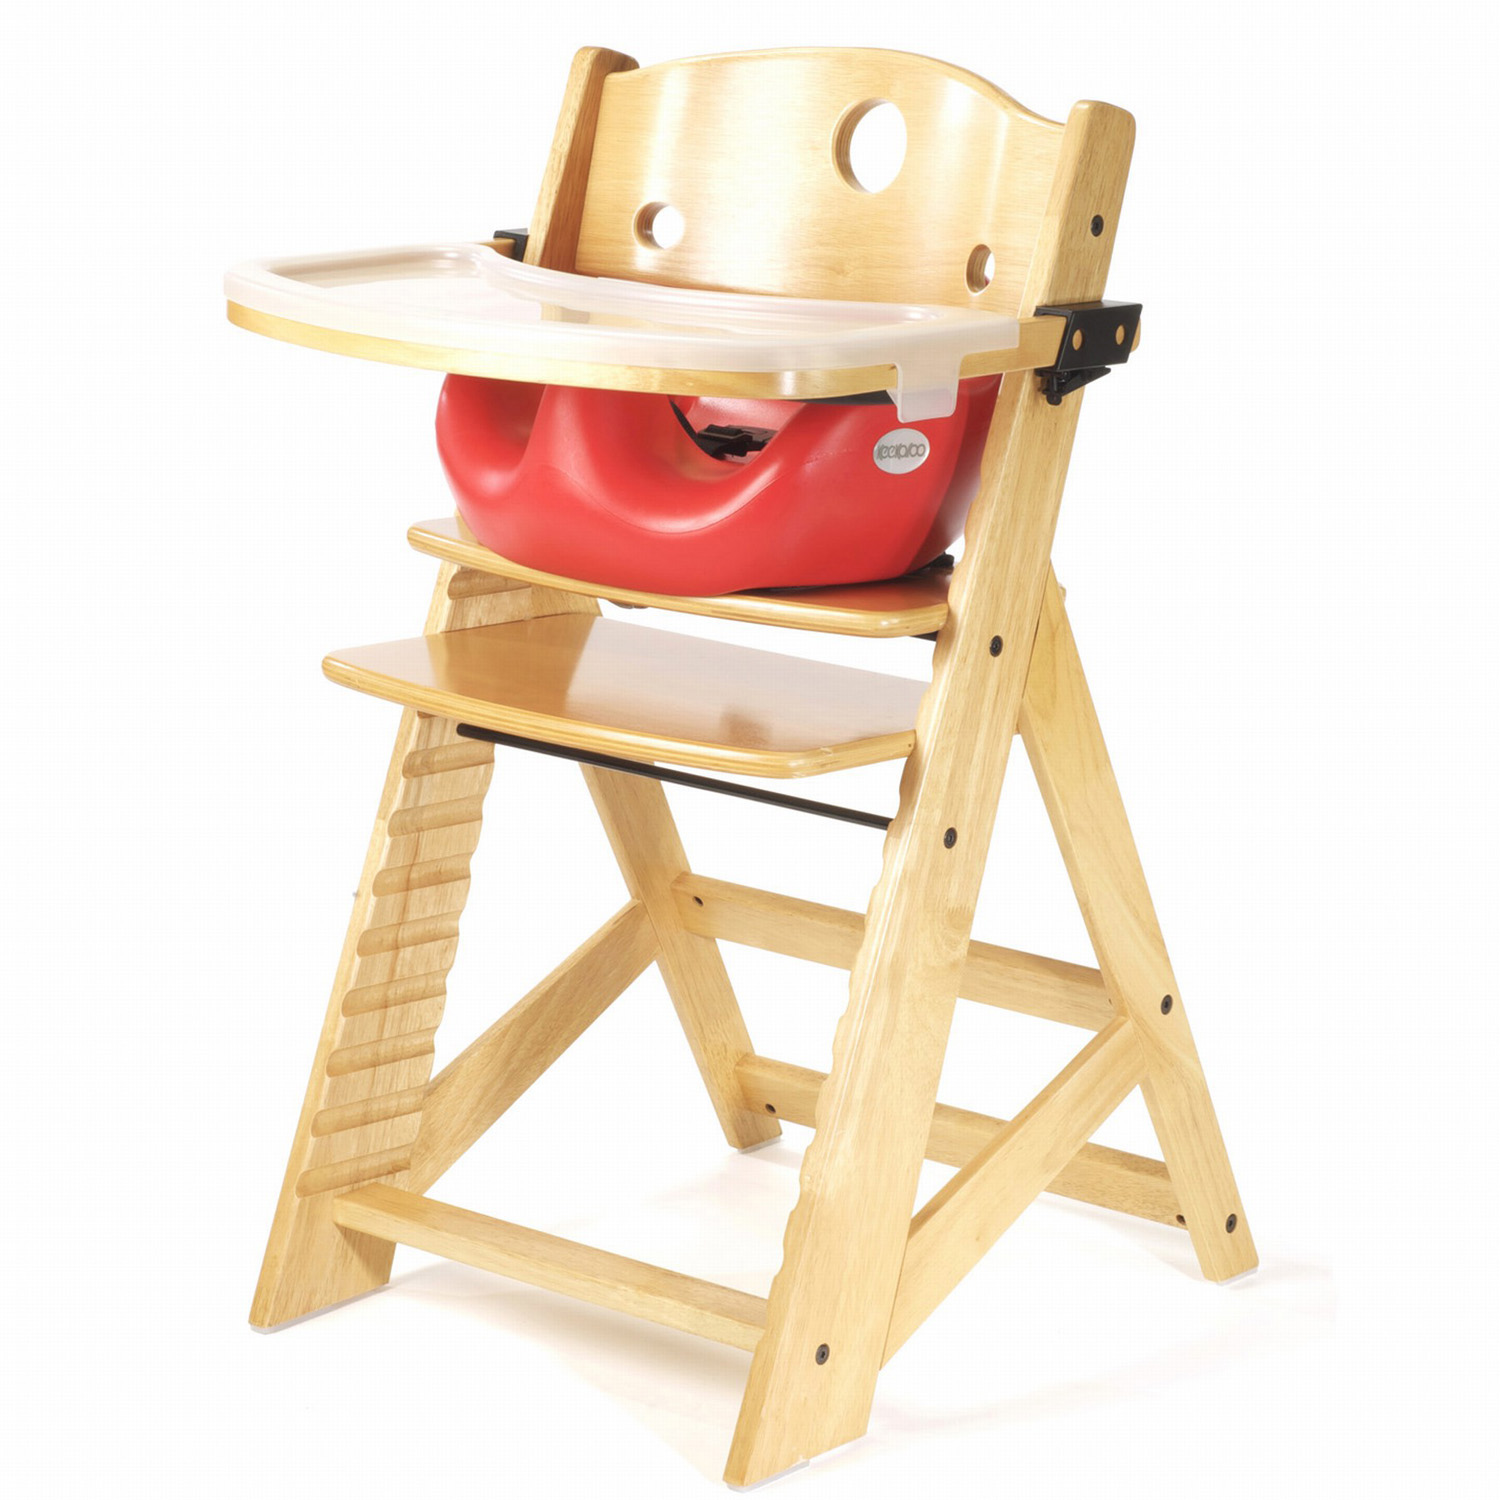 restaurant high chair with tray red covers amazon keekaroo height right infant seat and